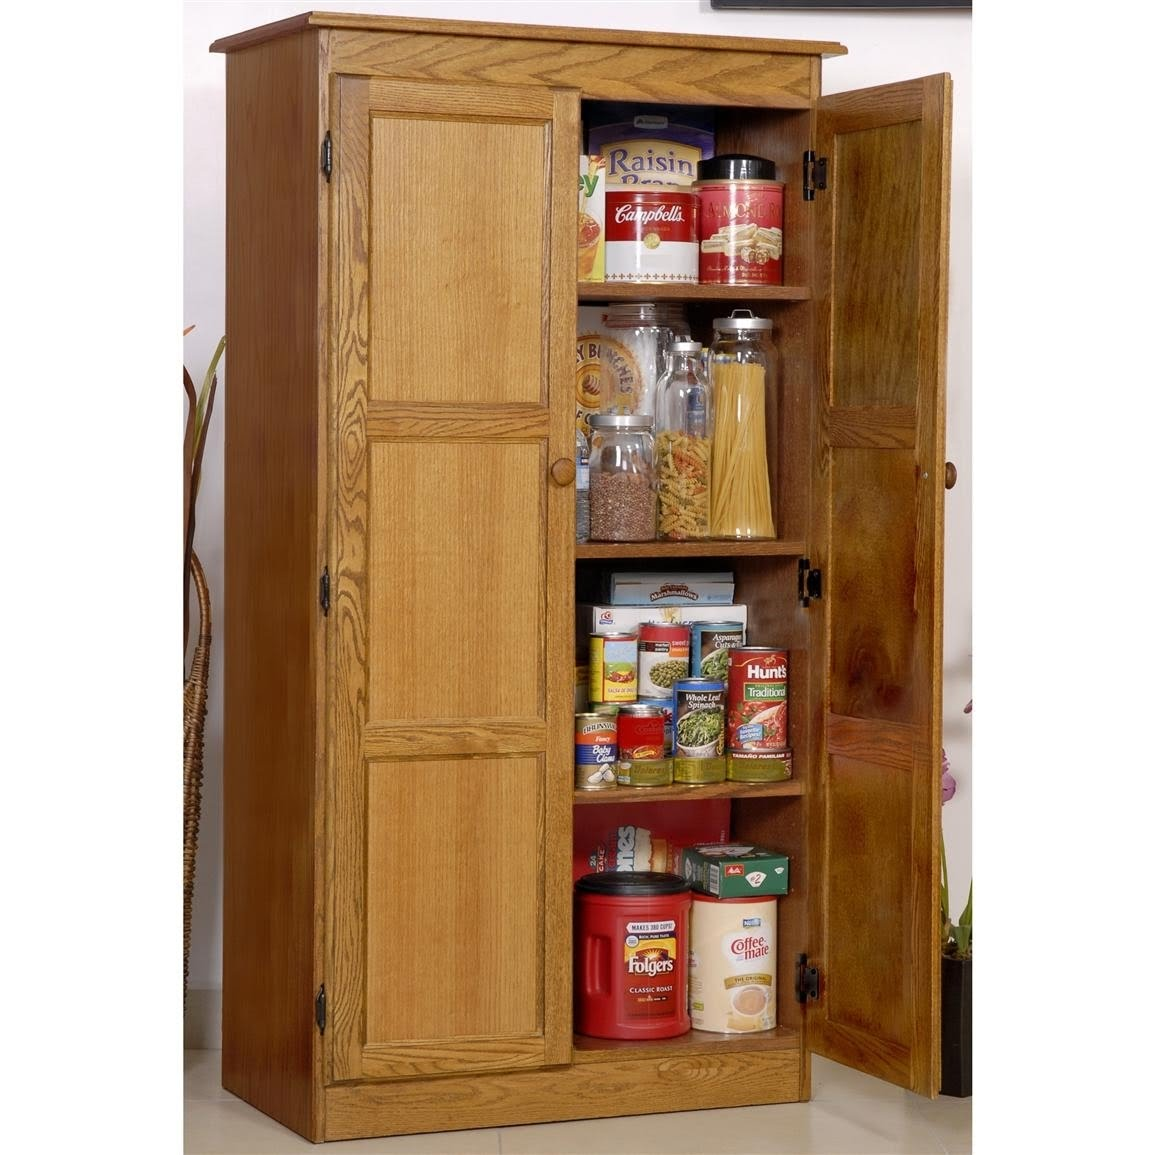 Storage Cabinets With Doors You Ll Love In 2021 Visualhunt